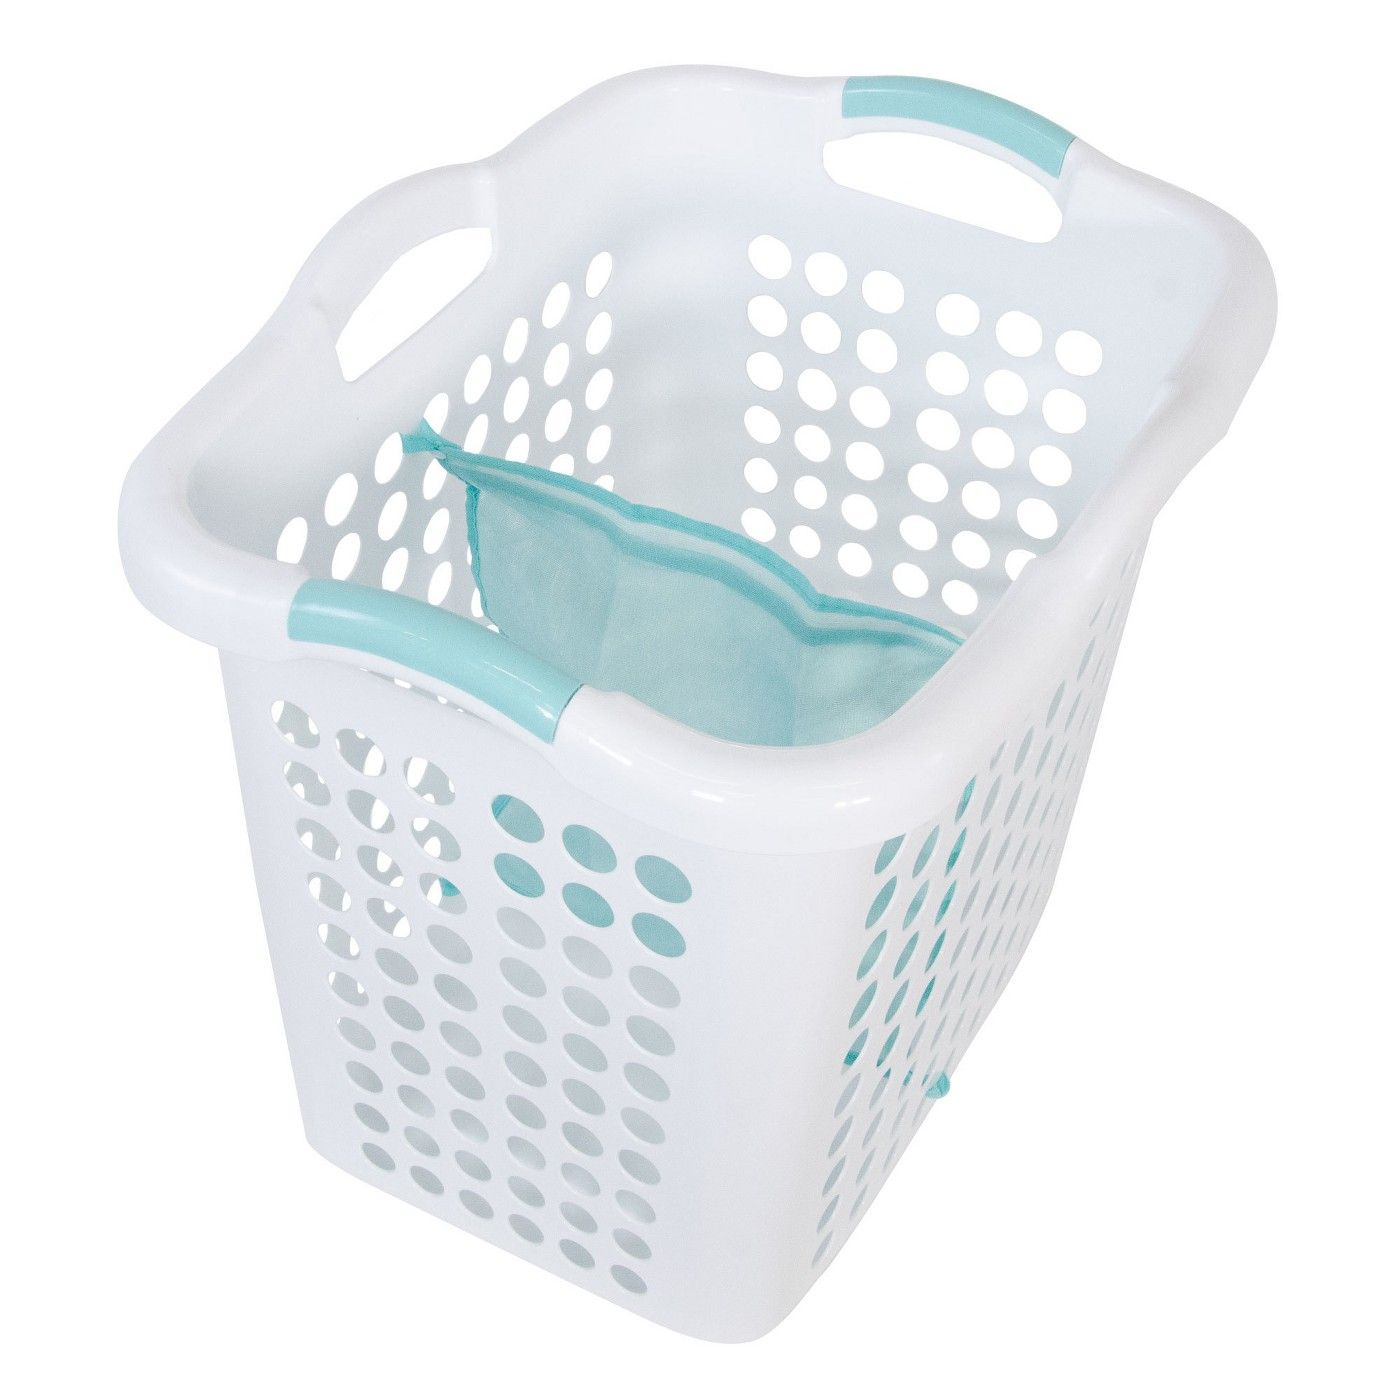 Laundry Basket With Mesh Divider Laundry Tote Laundry Laundry